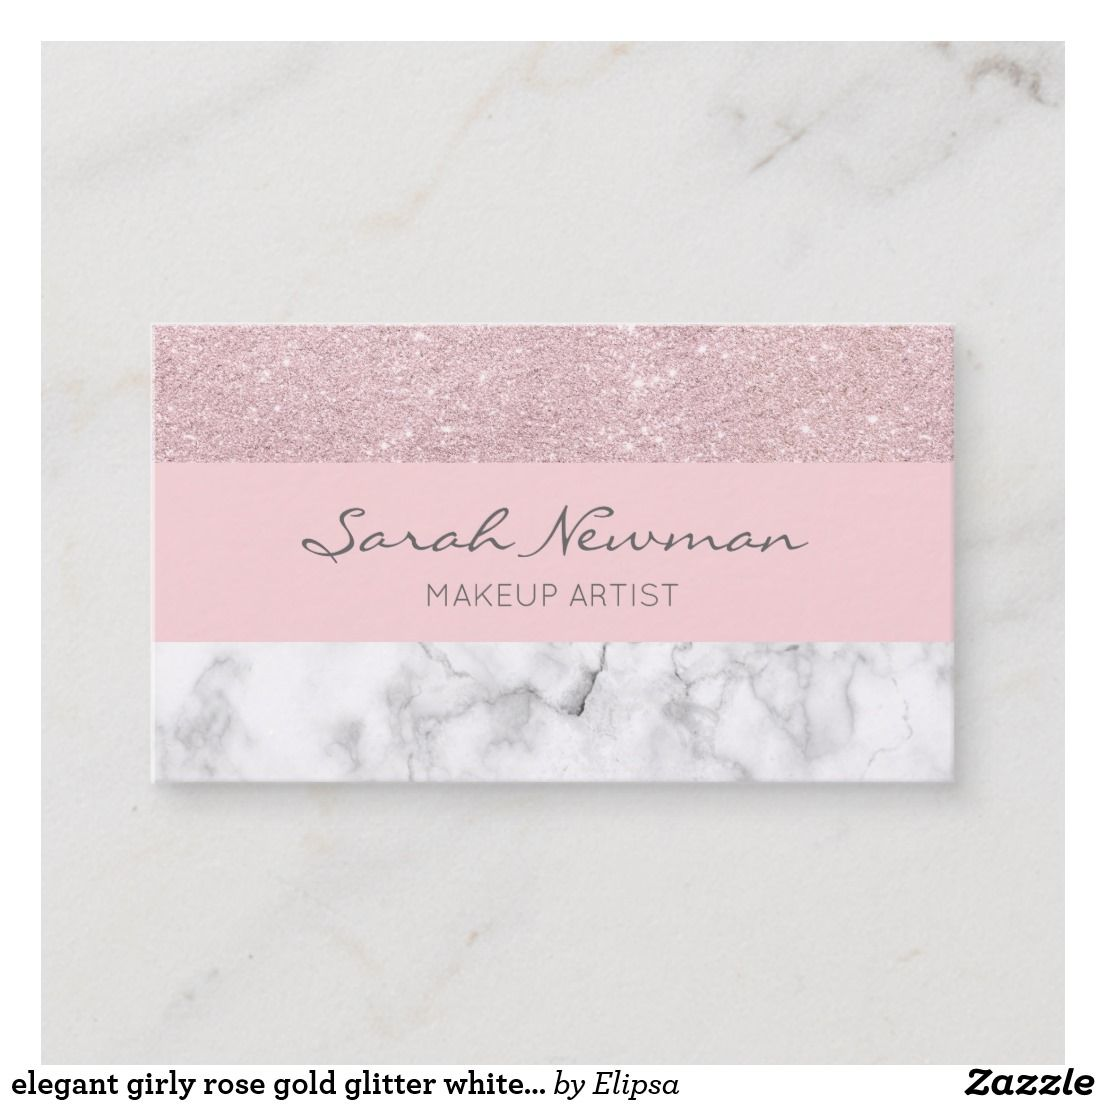 311 Dream In Leopard Lace Girly Pink Business Card Zazzle Com In 2021 Pink Business Card Salon Business Cards Beauty Salon Business Cards